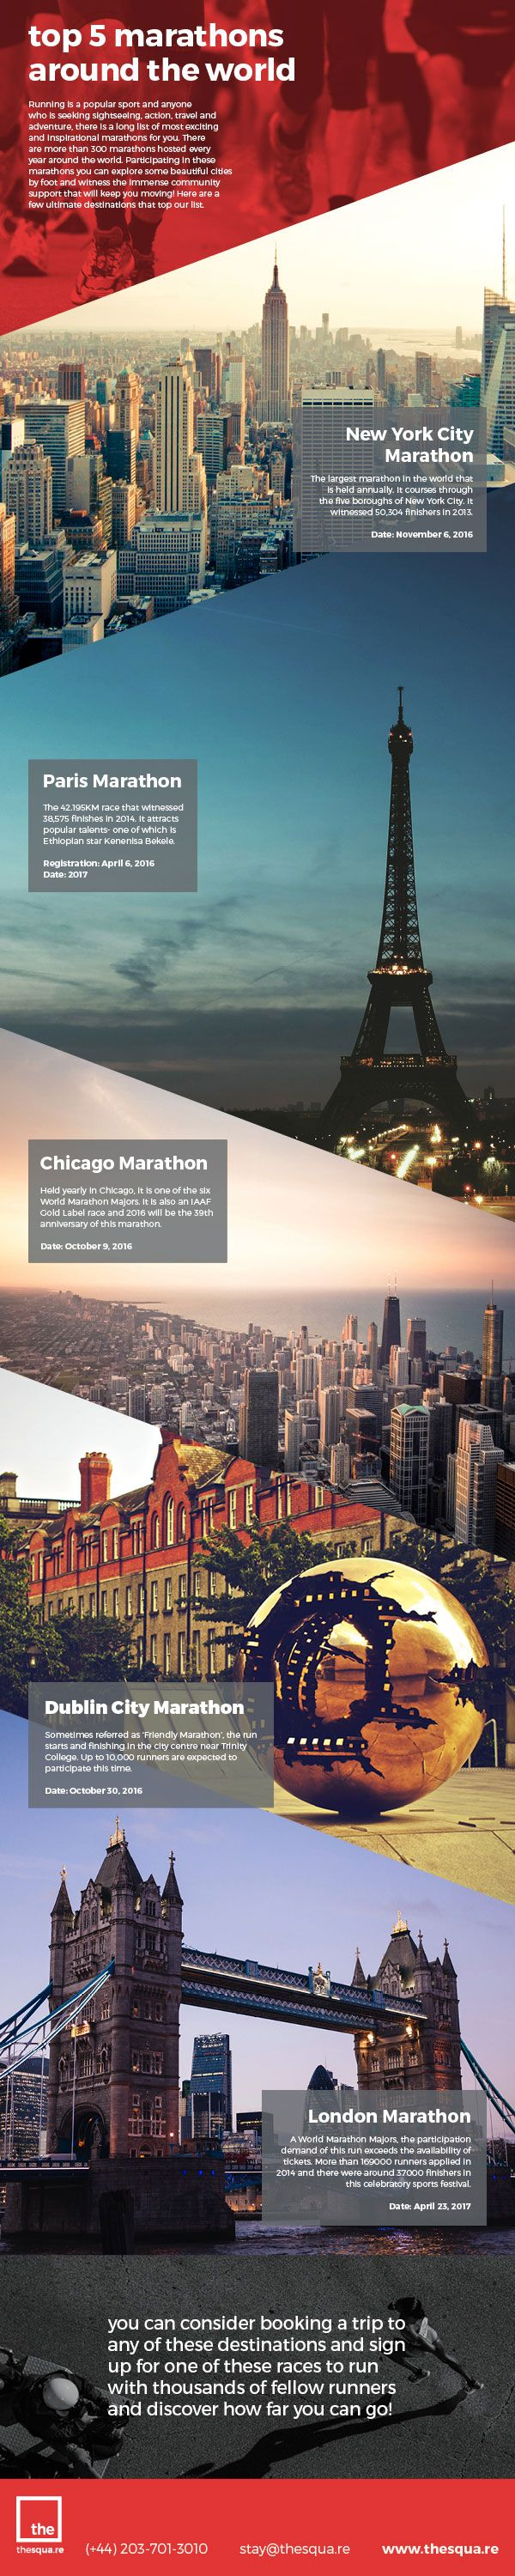 The #infographic talks about the Top 5 #marathons that takes place around the world in popular cities. The most popular marathons include #NewYorkCity #Marathon, #Chicago Marathon, #Paris Marathon, #London Marathon and #Dublin City Marathon where you can not only participate but also enjoy sightseeing, making your trip worthwhile. #traveller #travel #world #sports #runner #run